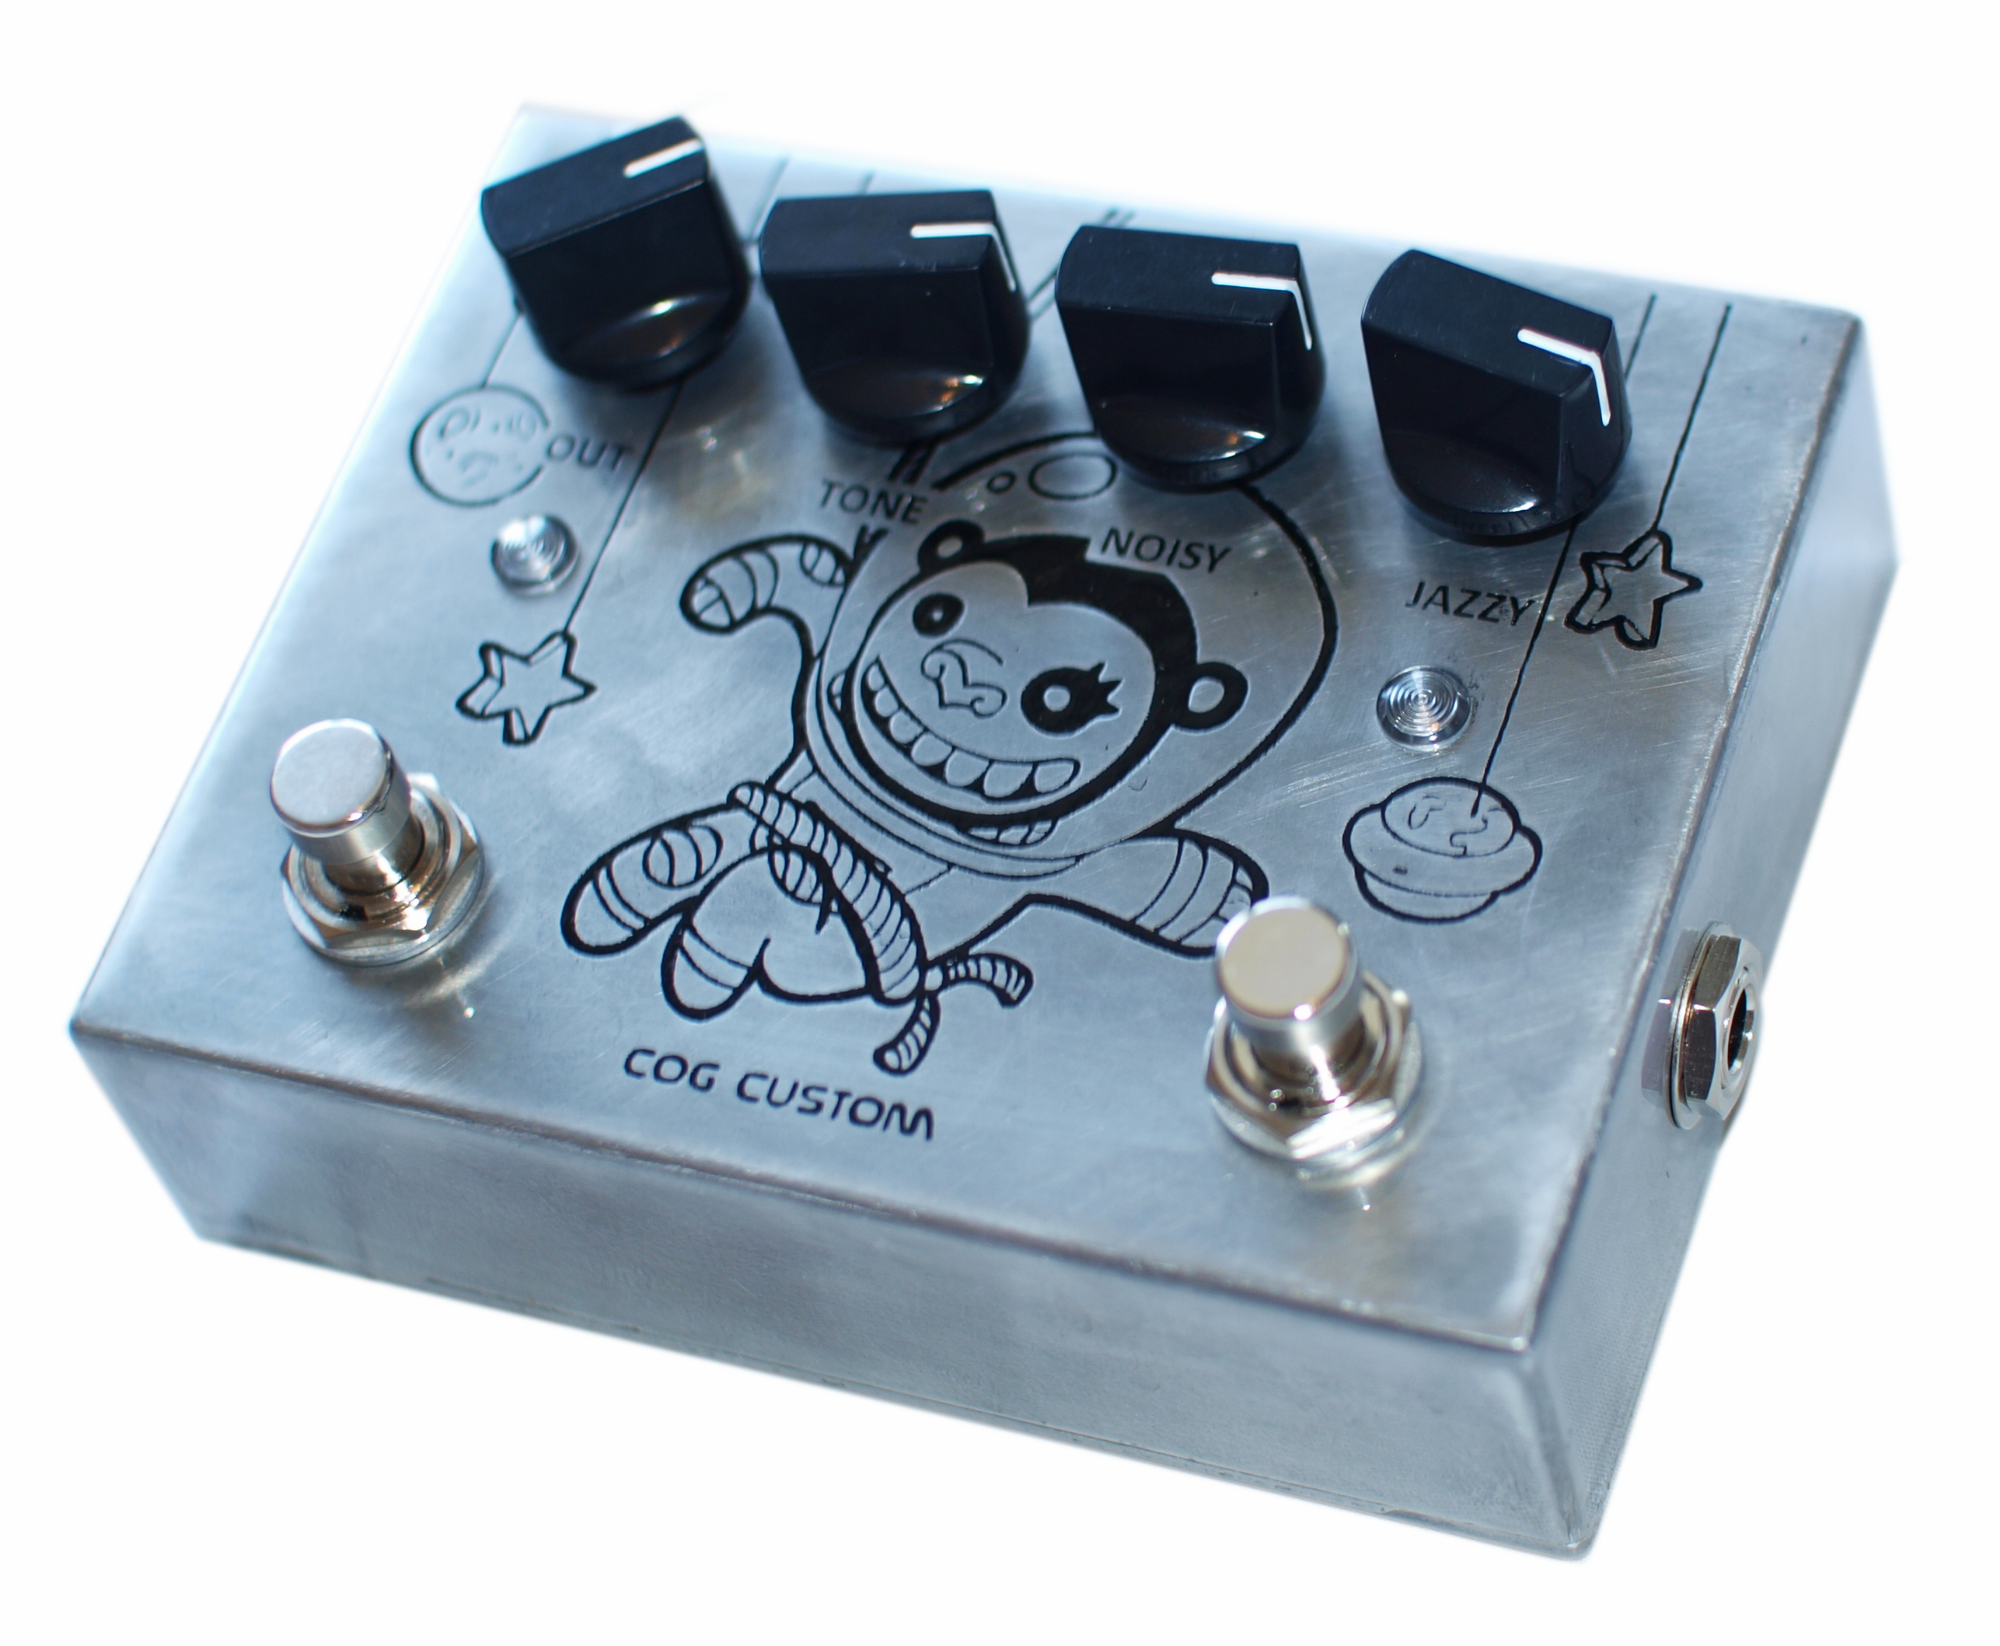 Cog Custom - Custom Effects Pedal - Disastrochimp two-channel Knightfall Distortion - Etched Enclosure